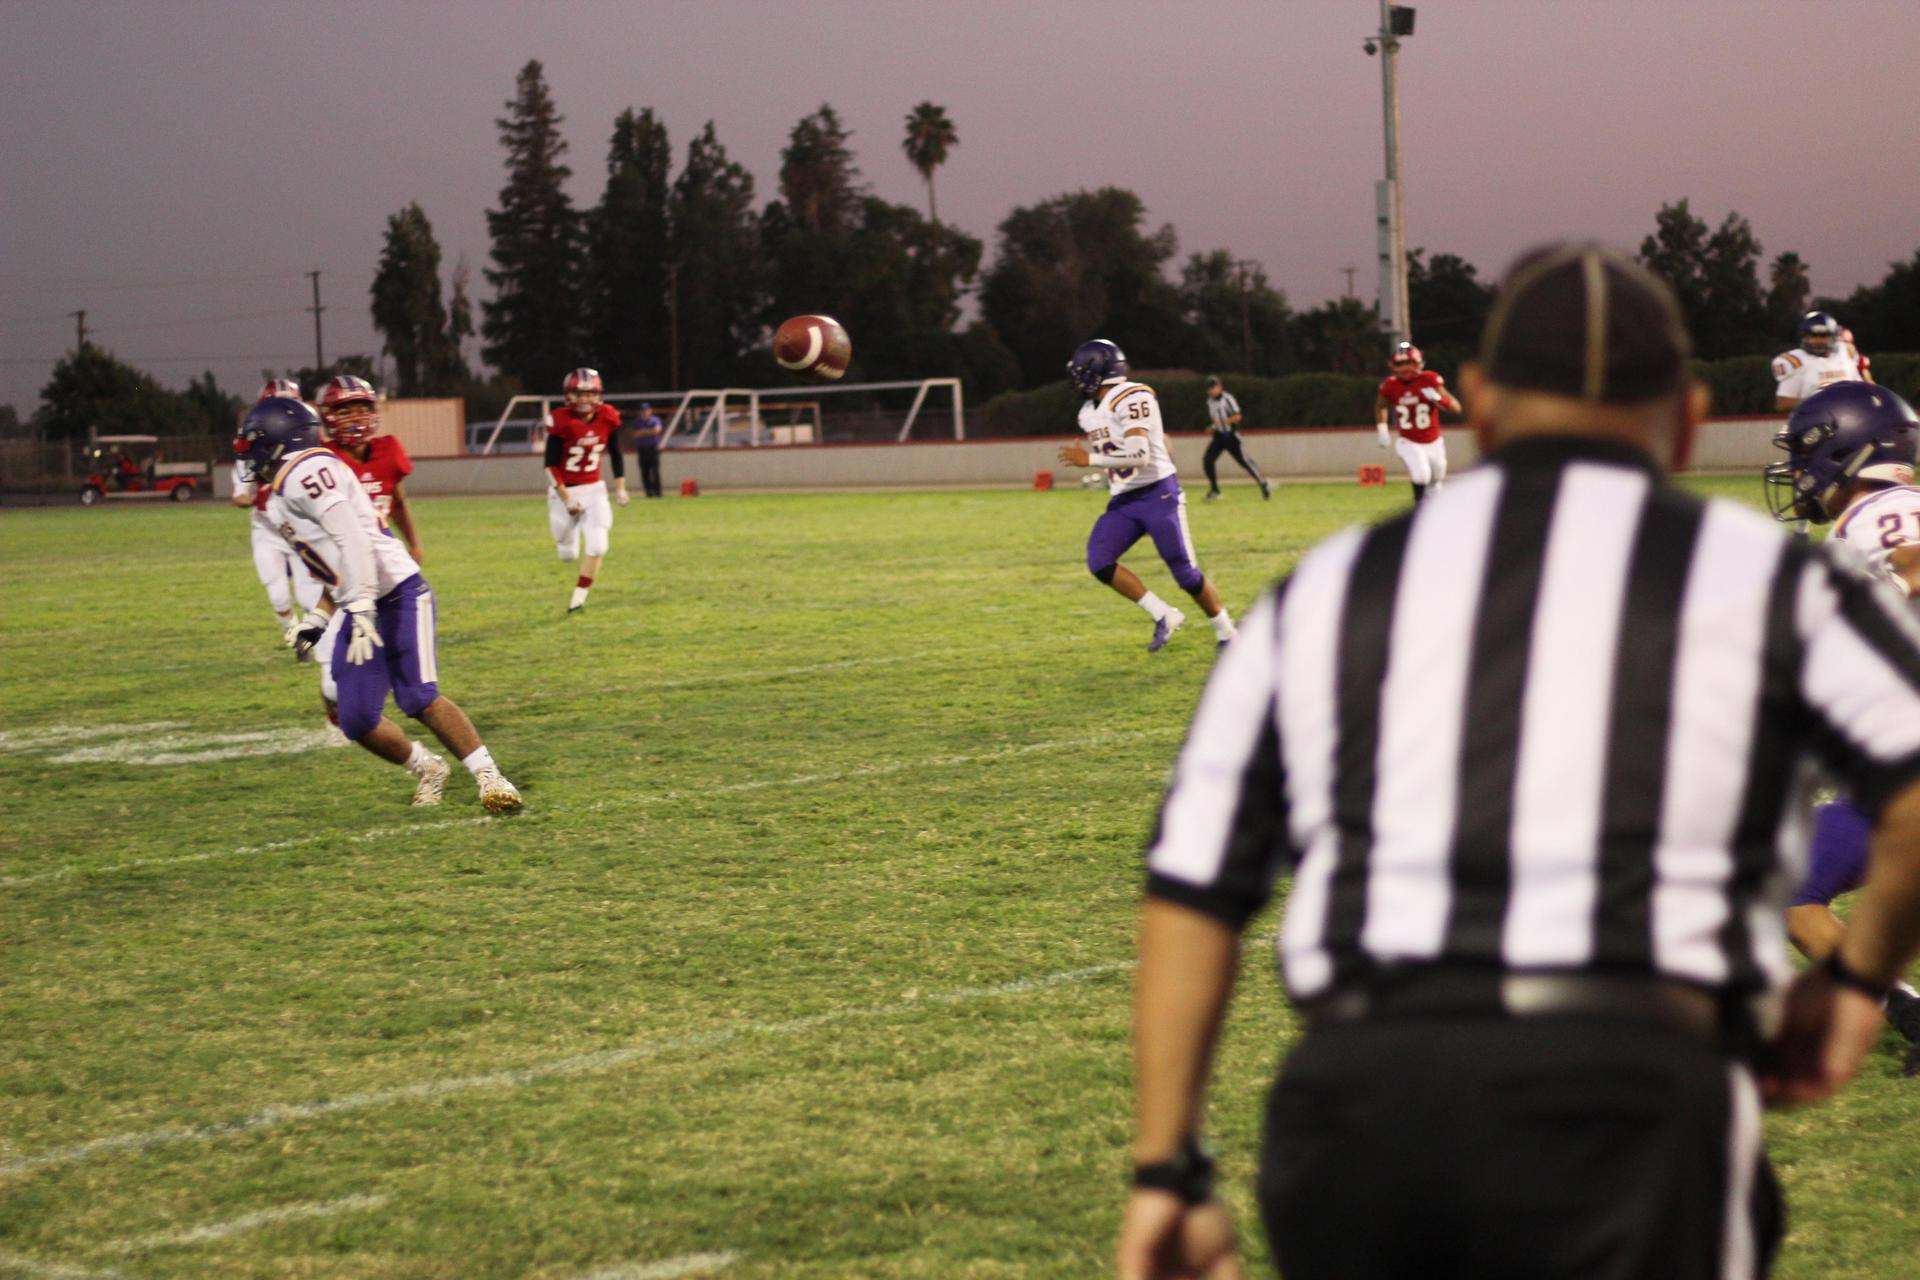 Varsity players against Lemoore